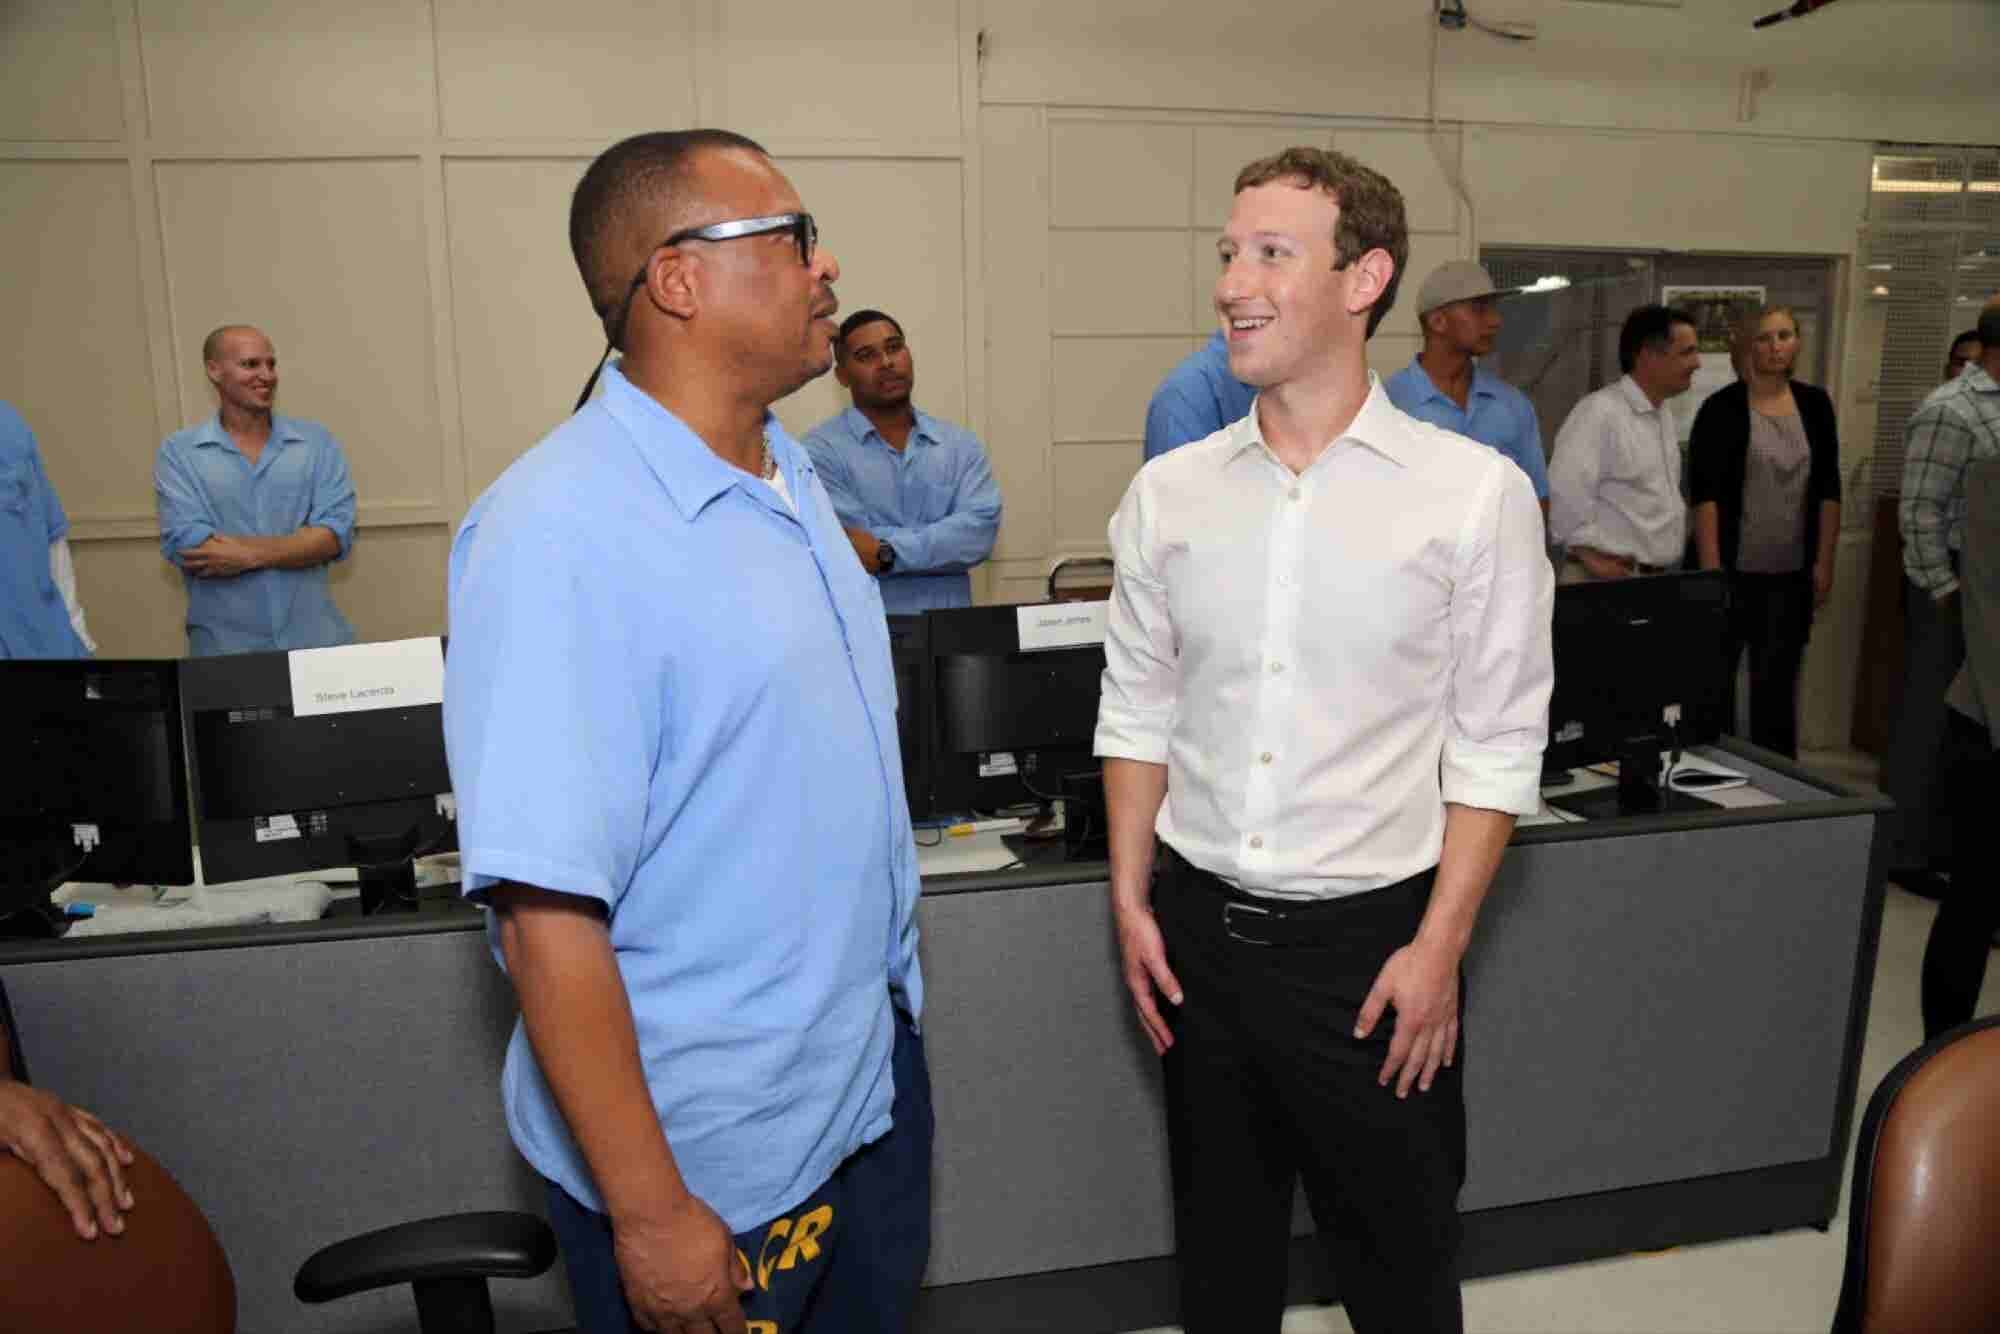 Zuckerberg's Prison Visit Shows That Great Opportunities Appear in the Most Unlikely Places